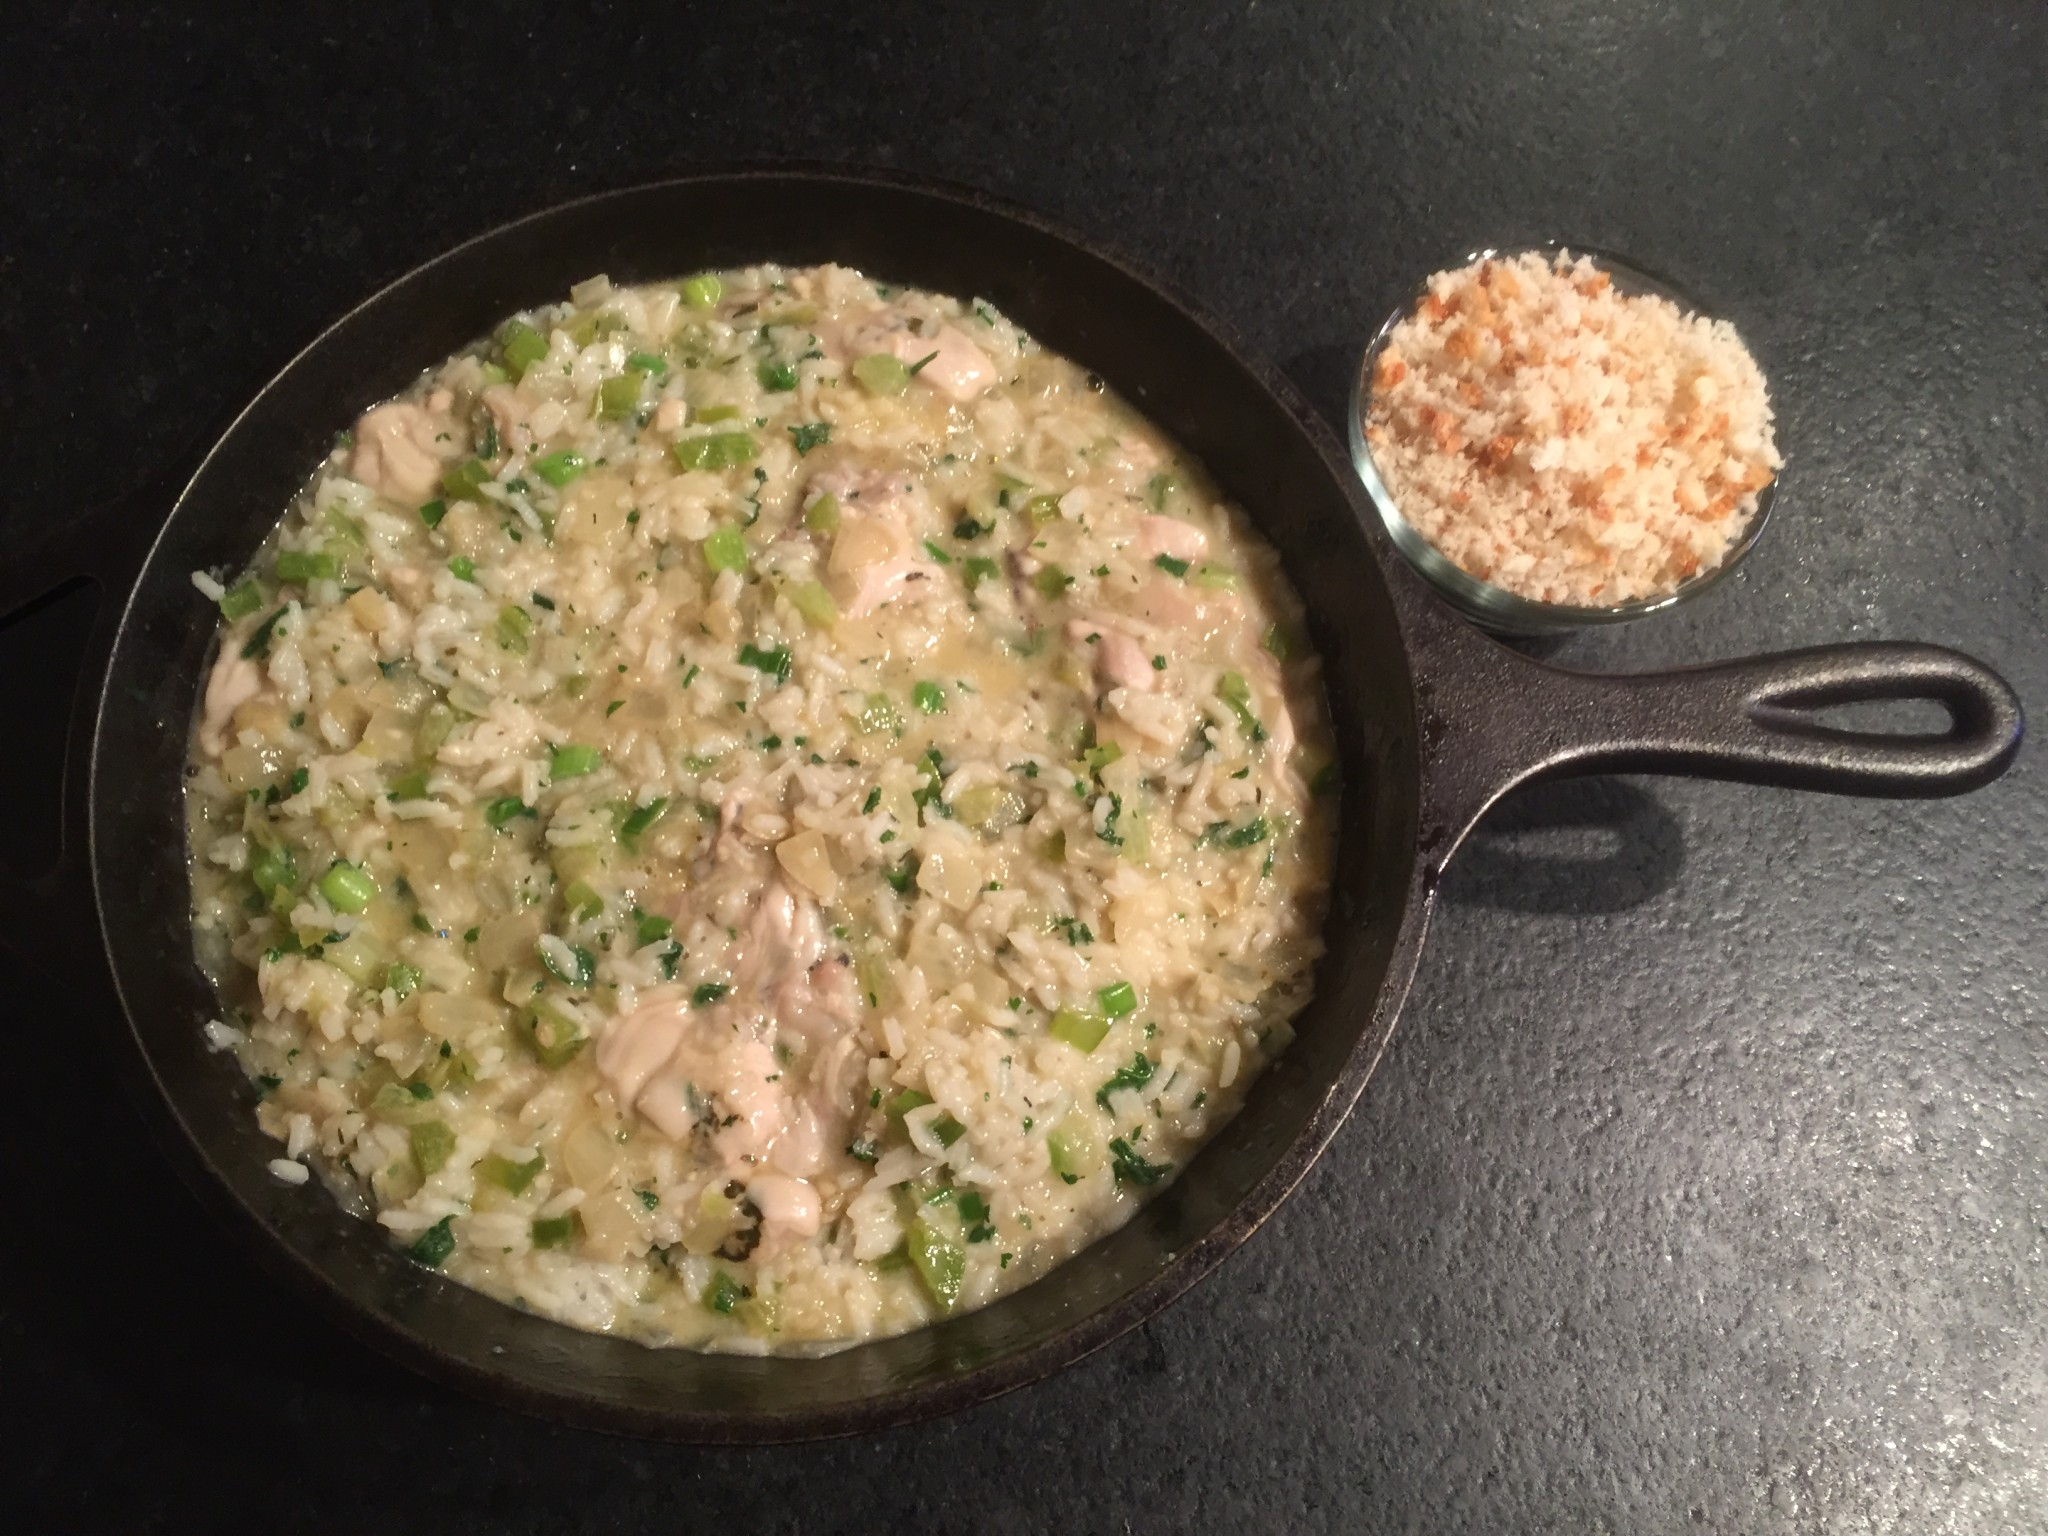 Deep skillet filled with oyster, rice and trinity mixture, ready for breadcrumb topping.